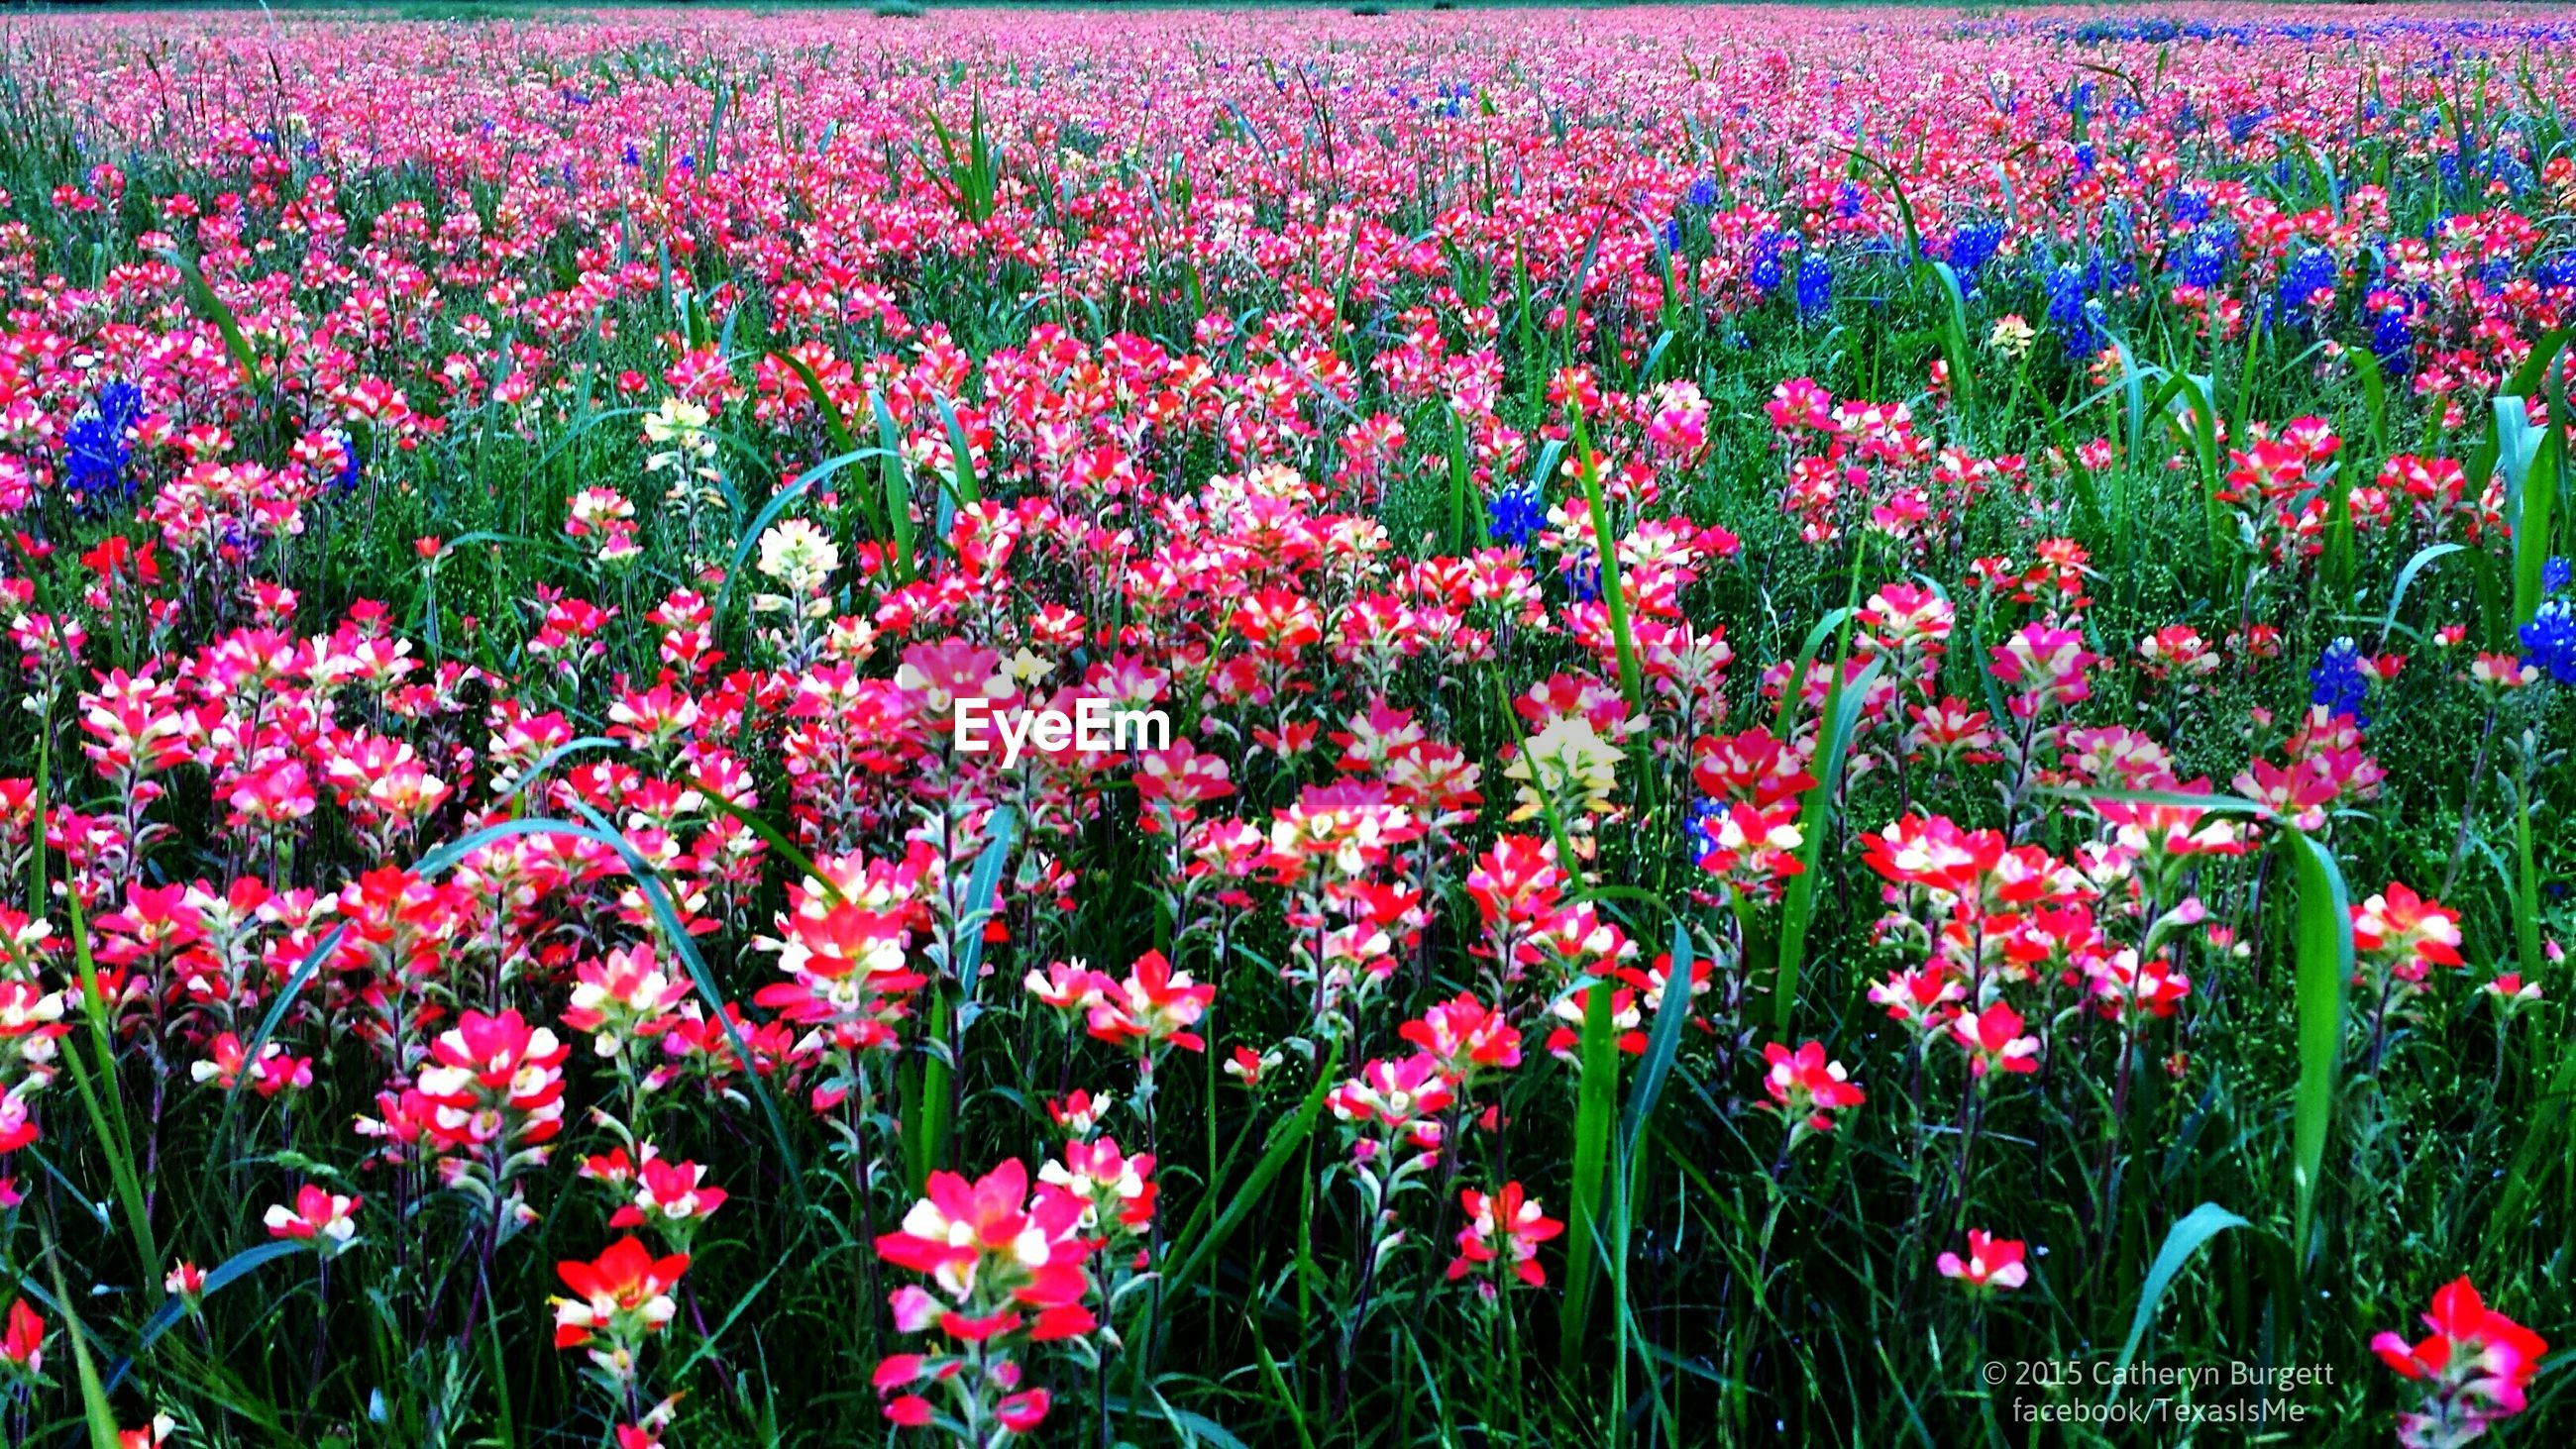 flower, freshness, growth, beauty in nature, fragility, plant, petal, field, blooming, nature, flower head, abundance, pink color, red, in bloom, high angle view, flowerbed, outdoors, day, full frame